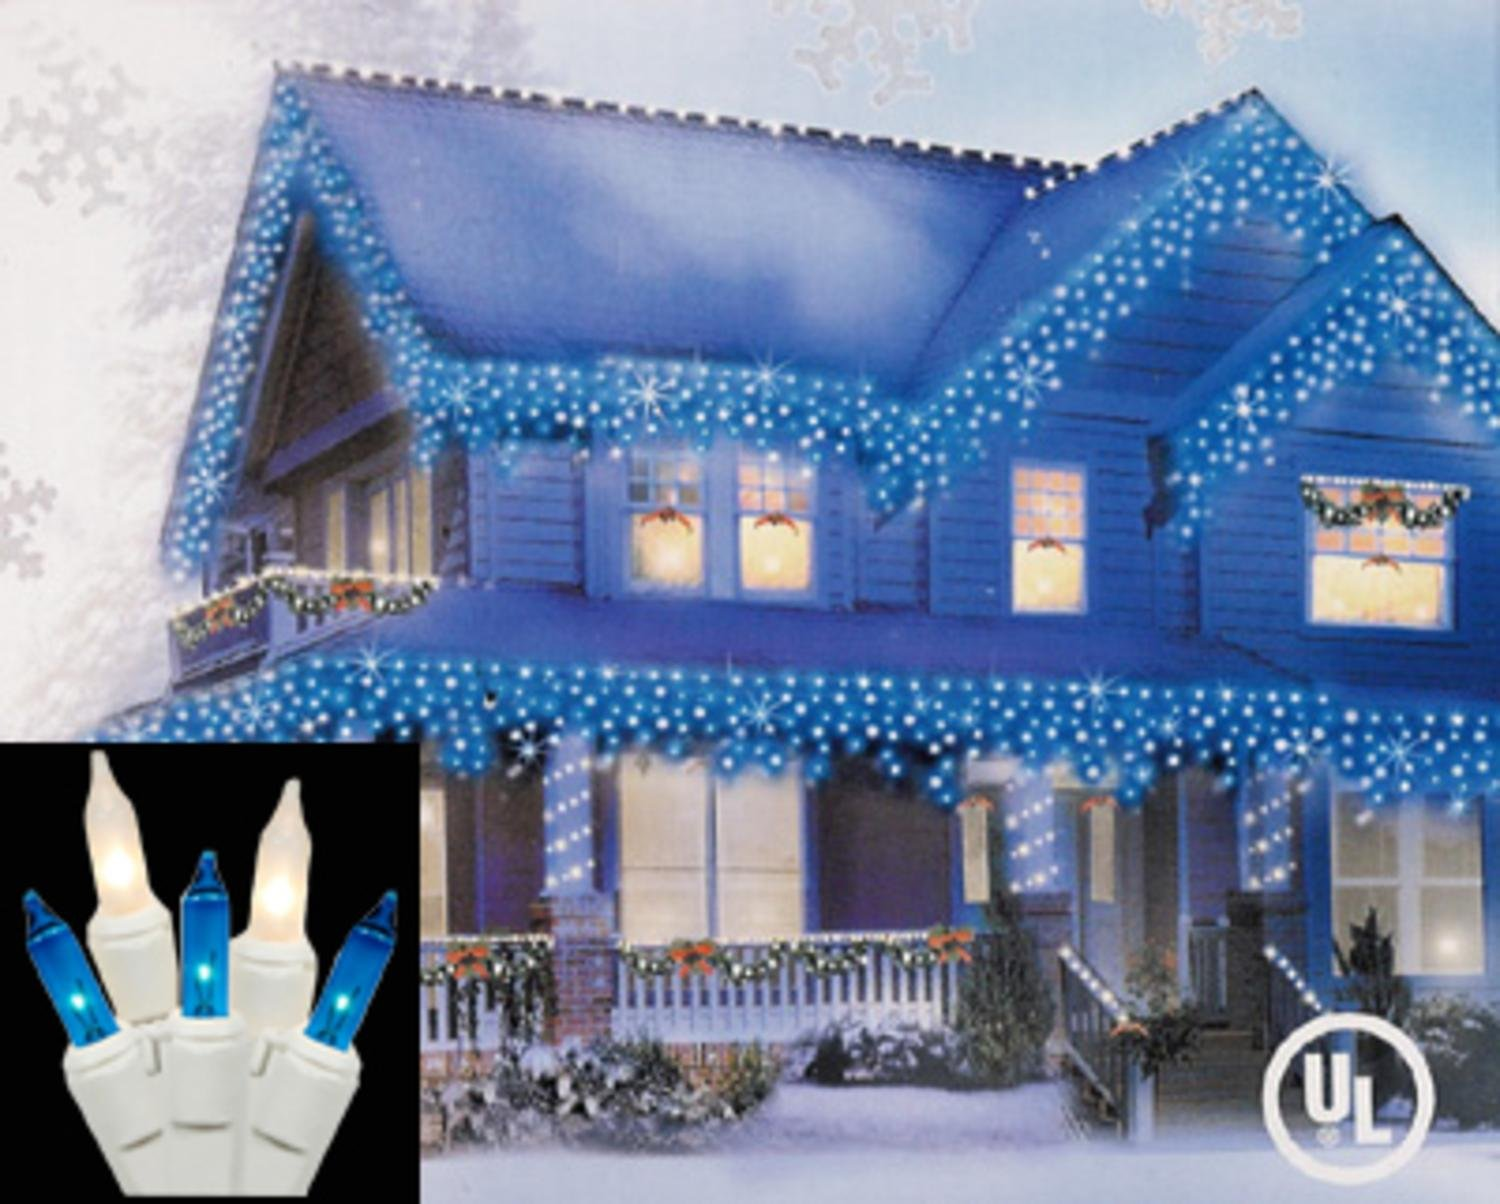 Amazon.com: Set of 100 Blue and Clear Frosted Icicle Christmas ...